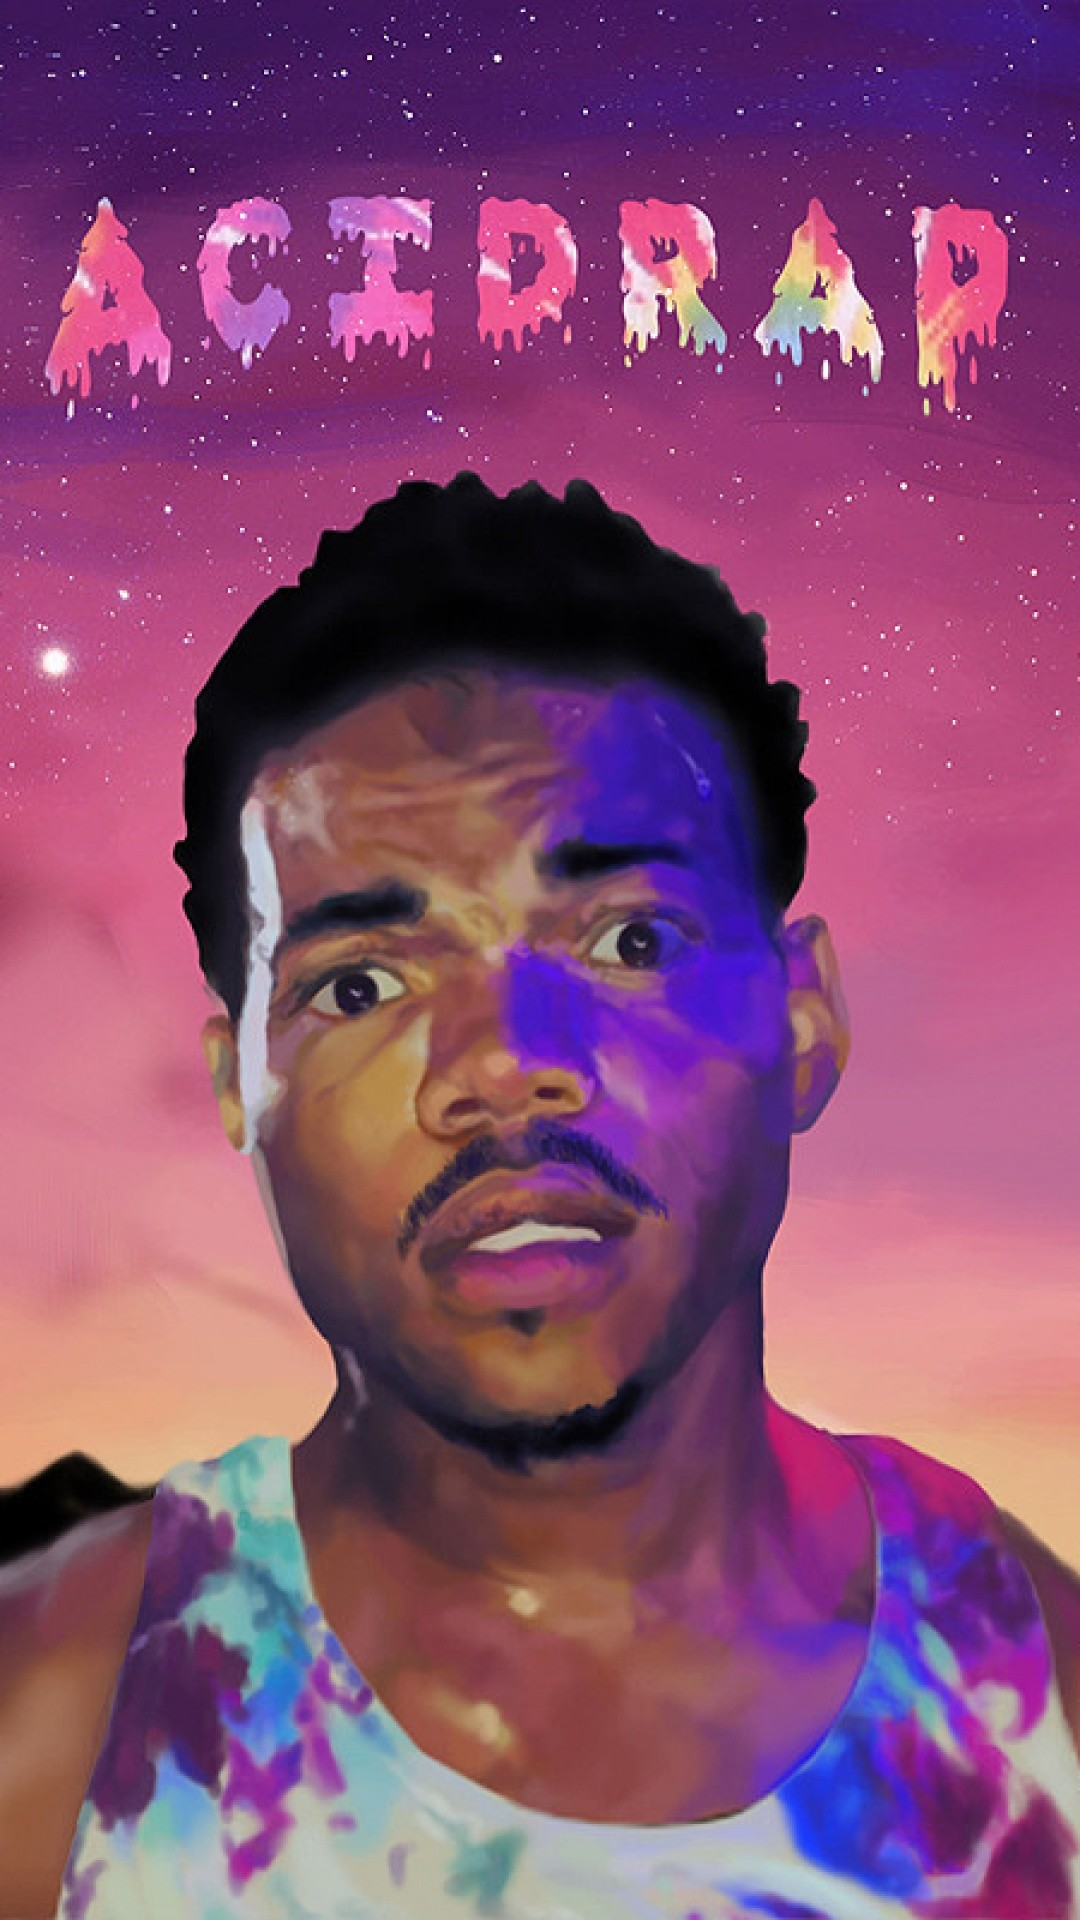 Chance the rapper wallpapers music voltagebd Choice Image